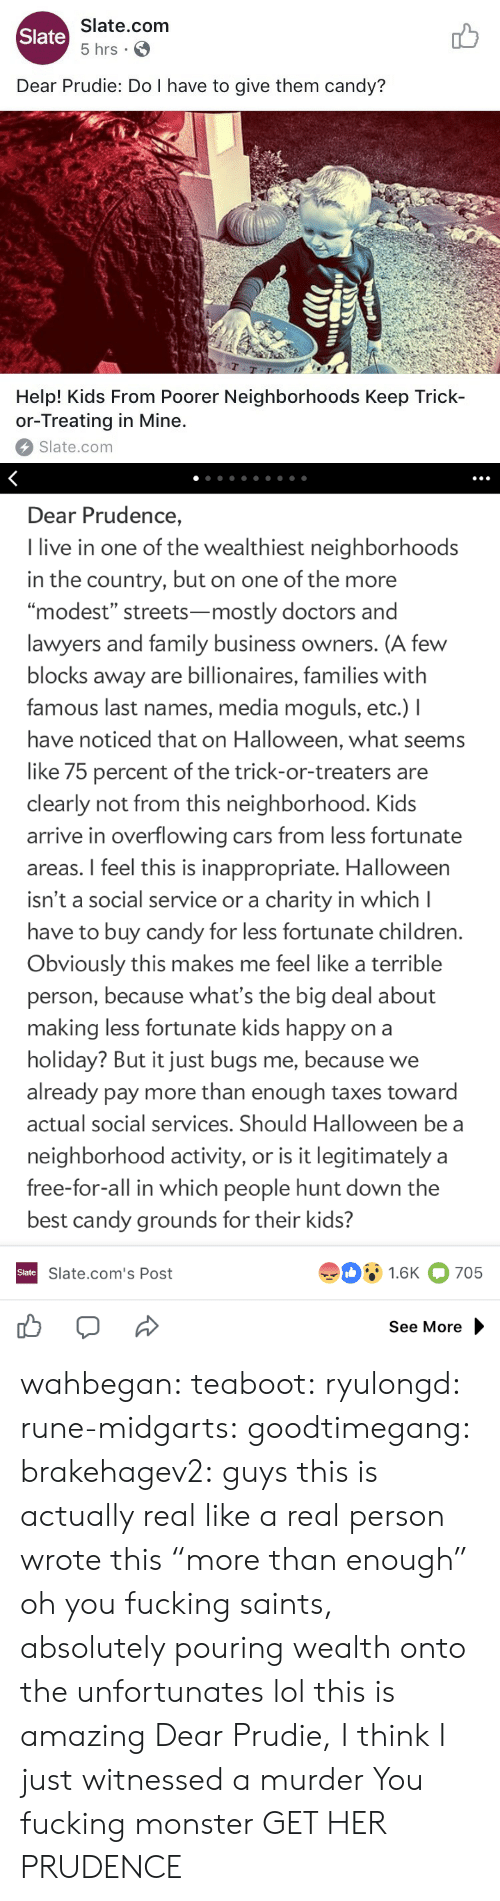 """Terrible Person: Slate.com  5 hrs .  Slate  Dear Prudie: Do I have to give them candy?  aT  T-T  Help! Kids From Poorer Neighborhoods Keep Trick-  or-Treating in Mine.  Slate.com   Dear Prudence,  I live in one of the wealthiest neighborhoods  in the country, but on one of the more  """"modest"""" streets-mostly doctors and  lawyers and family business owners. (A few  blocks away are billionaires, families with  famous last names, media moguls, etc.) I  have noticed that on Halloween, what seems  like 75 percent of the trick-or-treaters are  clearly not from this neighborhood. Kids  arrive in overflowing cars from less fortunate  areas. I feel this is inappropriate. Halloween  isn't a social service or a charity in which l  have to buy candy for less fortunate children  Obviously this makes me feel like a terrible  person, because what's the big deal about  making less fortunate kids happy on a  holiday? But it just bugs me, because we  already pay more than enough taxes toward  actual social services. Should Halloween be a  neighborhood activity, or is it legitimately a  free-for-all in which people hunt down the  best candy grounds for their kids?  91.6K 705  Slate  Slate.com's Post  See More wahbegan: teaboot:  ryulongd:  rune-midgarts:  goodtimegang:  brakehagev2:  guys this is actually real like a real person wrote this  """"more than enough"""" oh you fucking saints, absolutely pouring wealth onto the unfortunates   lol this is amazing   Dear Prudie, I think I just witnessed a murder  You fucking monster  GET HER PRUDENCE"""